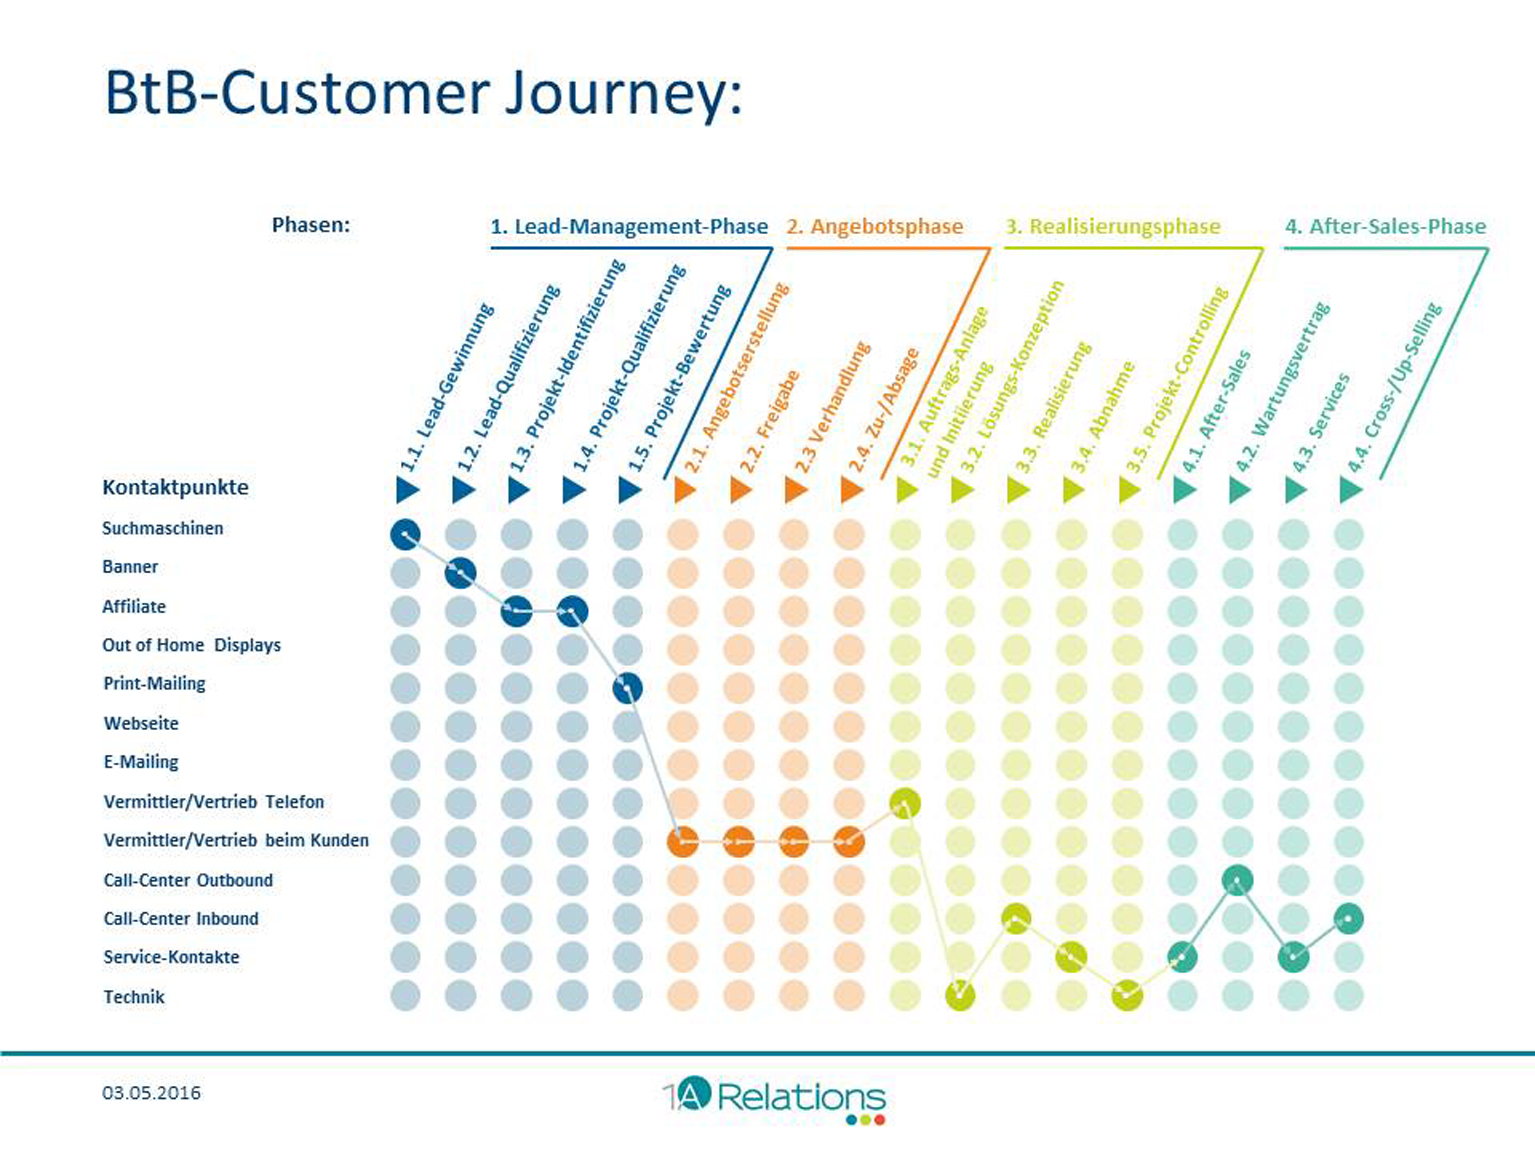 Bild: BtB Customer Journey von 1A Relations